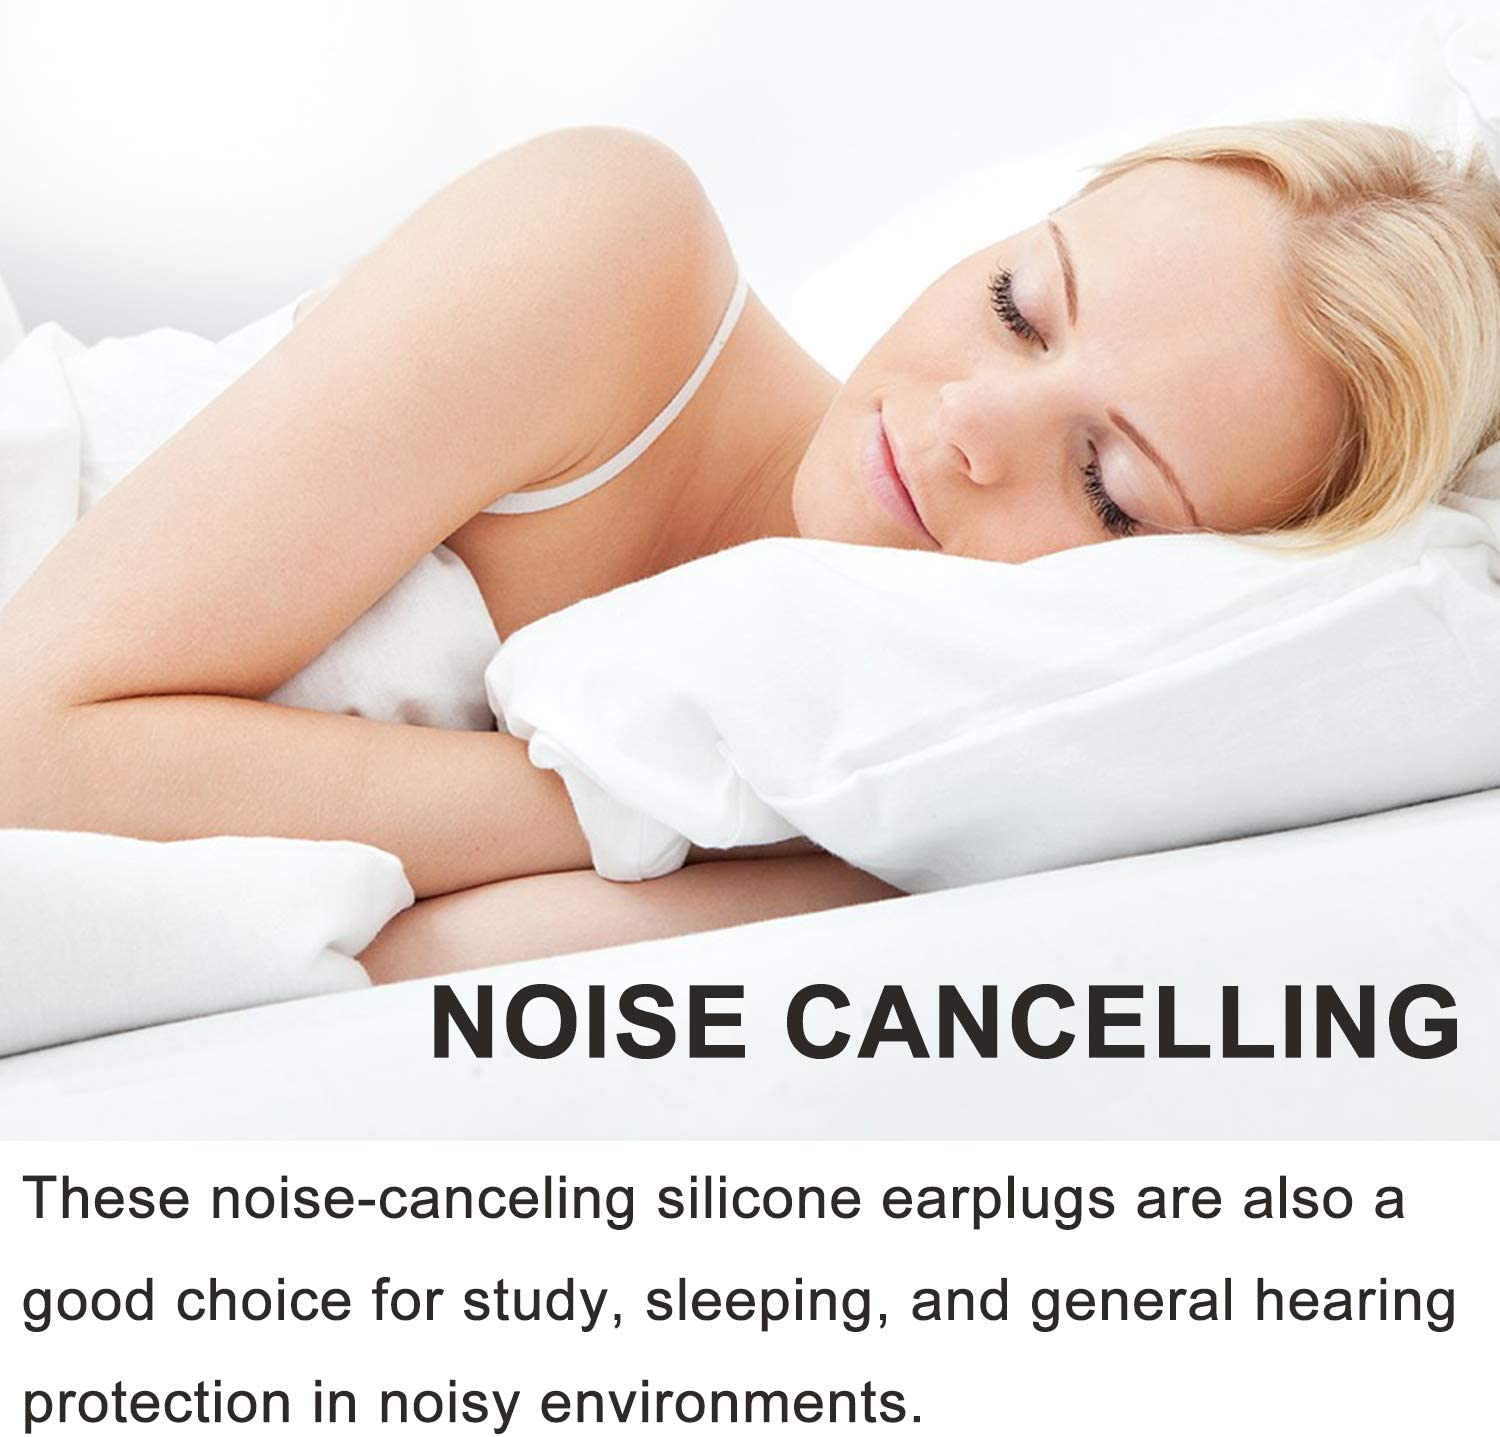 Ear Plugs for Sleeping, Reusable Silicone Moldable Noise Cancelling Sound Blocking Reduction Earplugs for Swimming, Snoring, Concerts, Shooting, Airplanes, Musicians, 32dB Highest NRR: Health & Personal Care